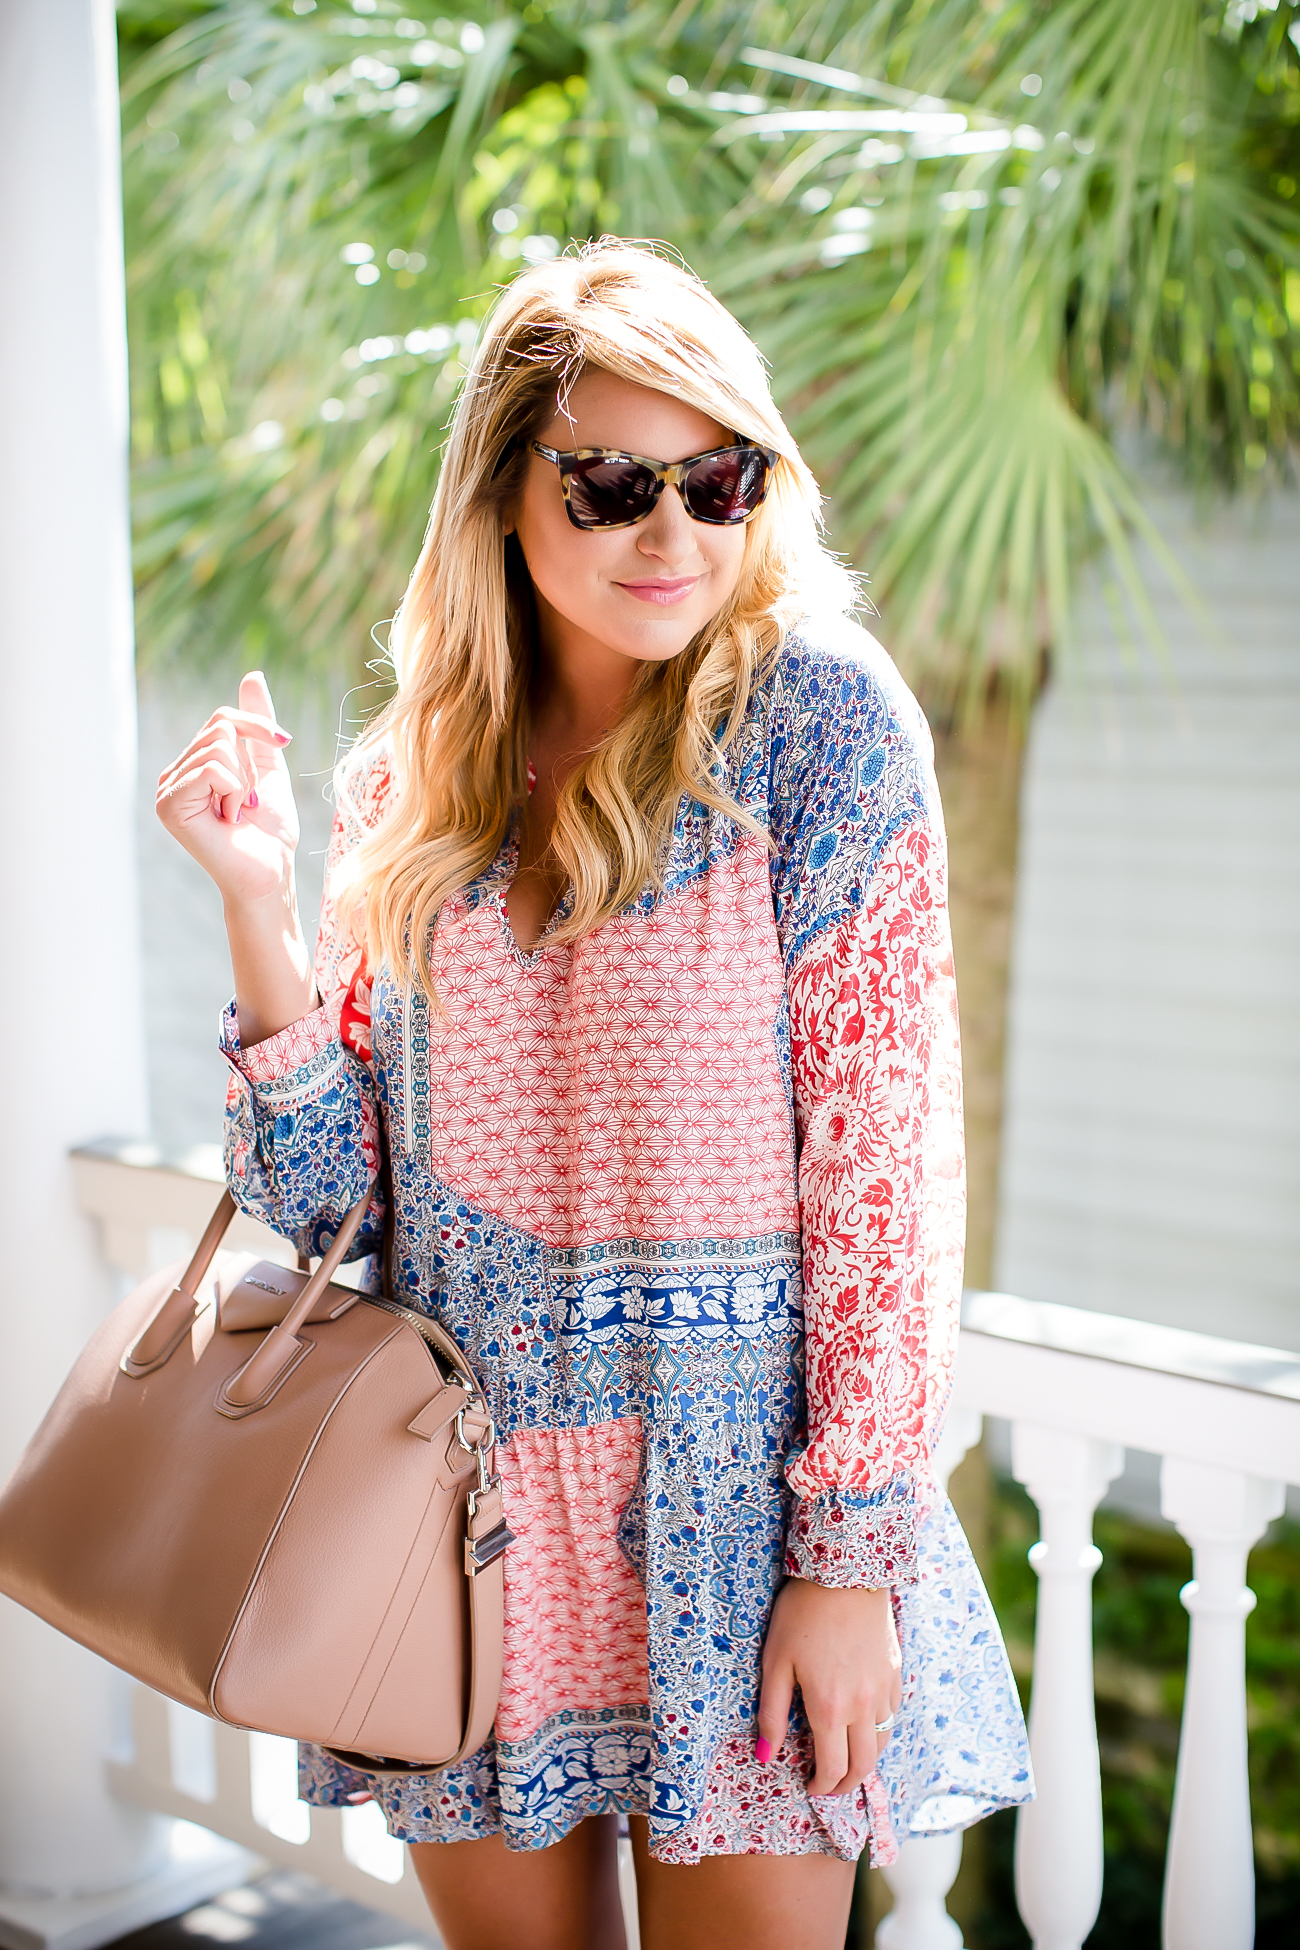 Precious Outfit Nordstrom Spring Dresses Shop Dandy A Florida Based Style Andbeauty Blog By Danielle Outfit Nordstrom Spring Dresses Shop Dandy A Florida Based Spring Dresses 2016 Australia Spring Par wedding dress Spring Dresses 2016